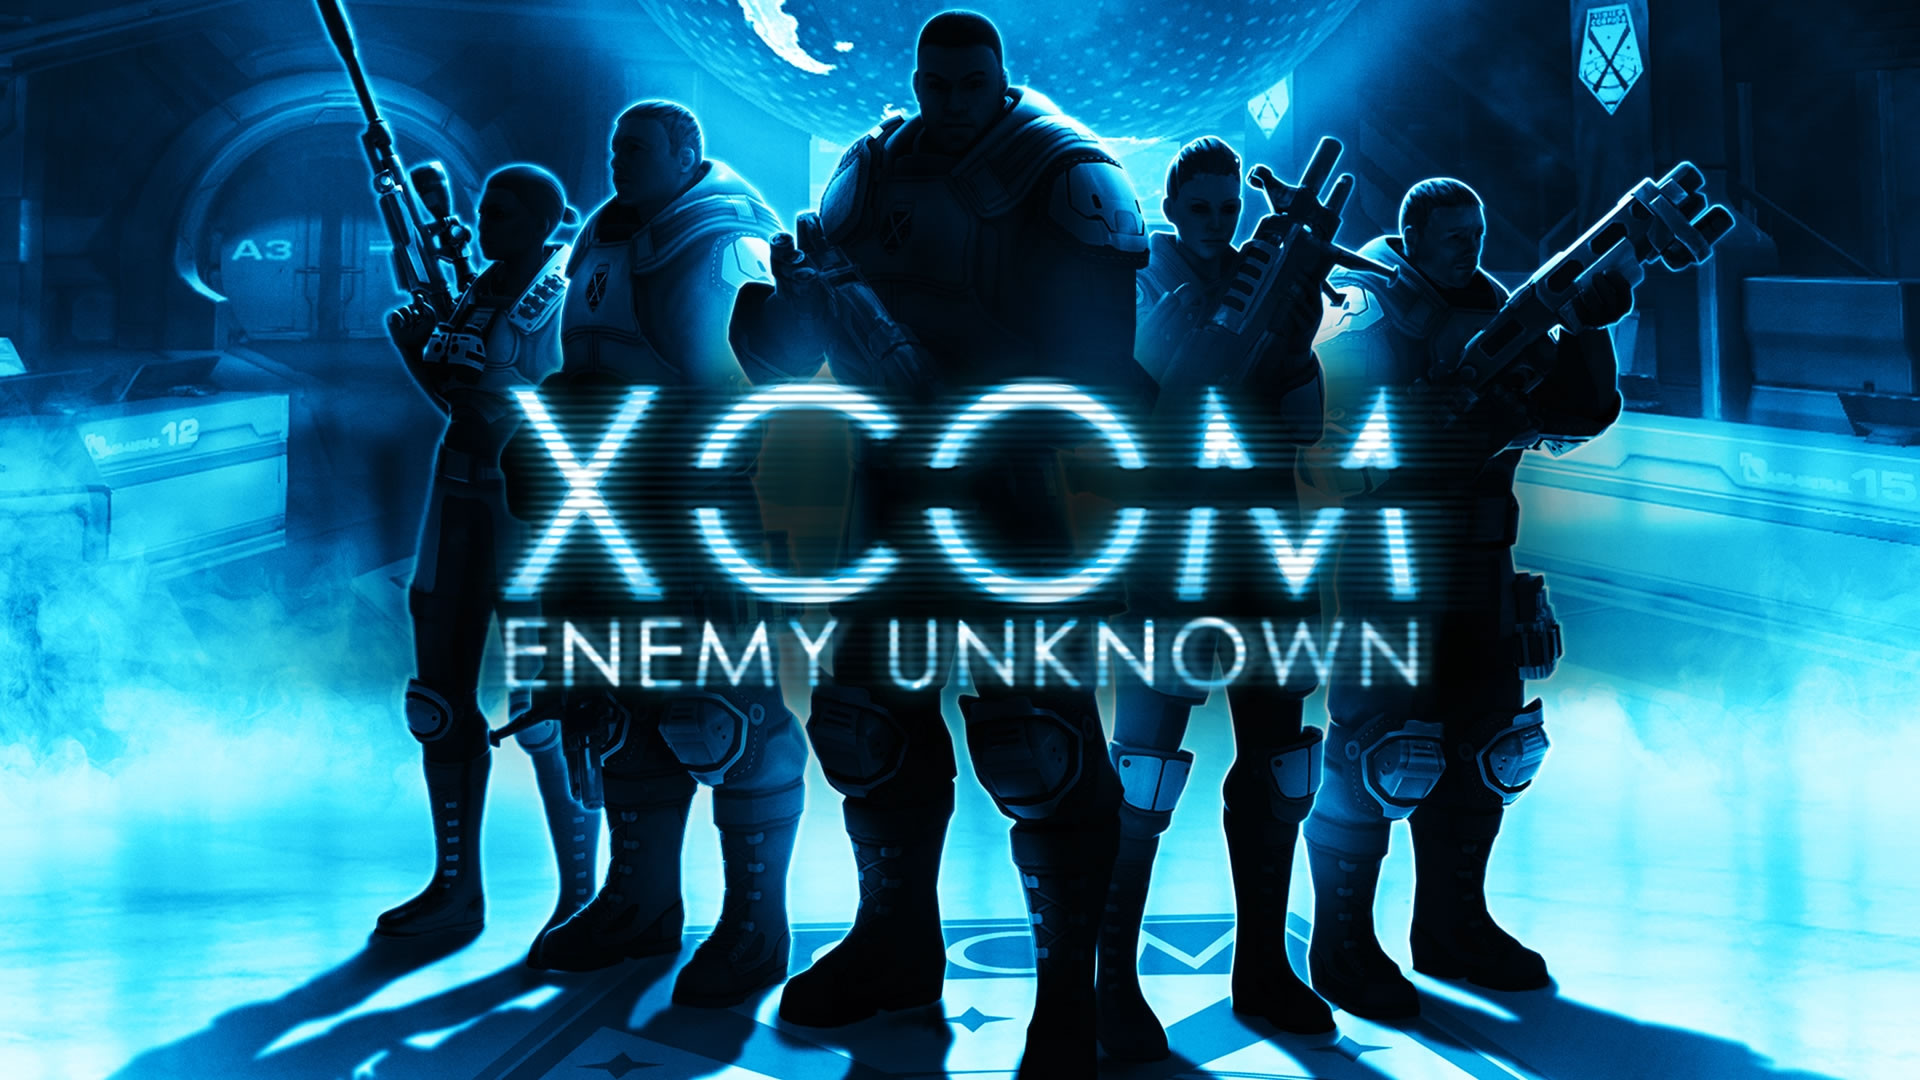 LagZero Analiza: XCOM: Enemy Unknown [Review]